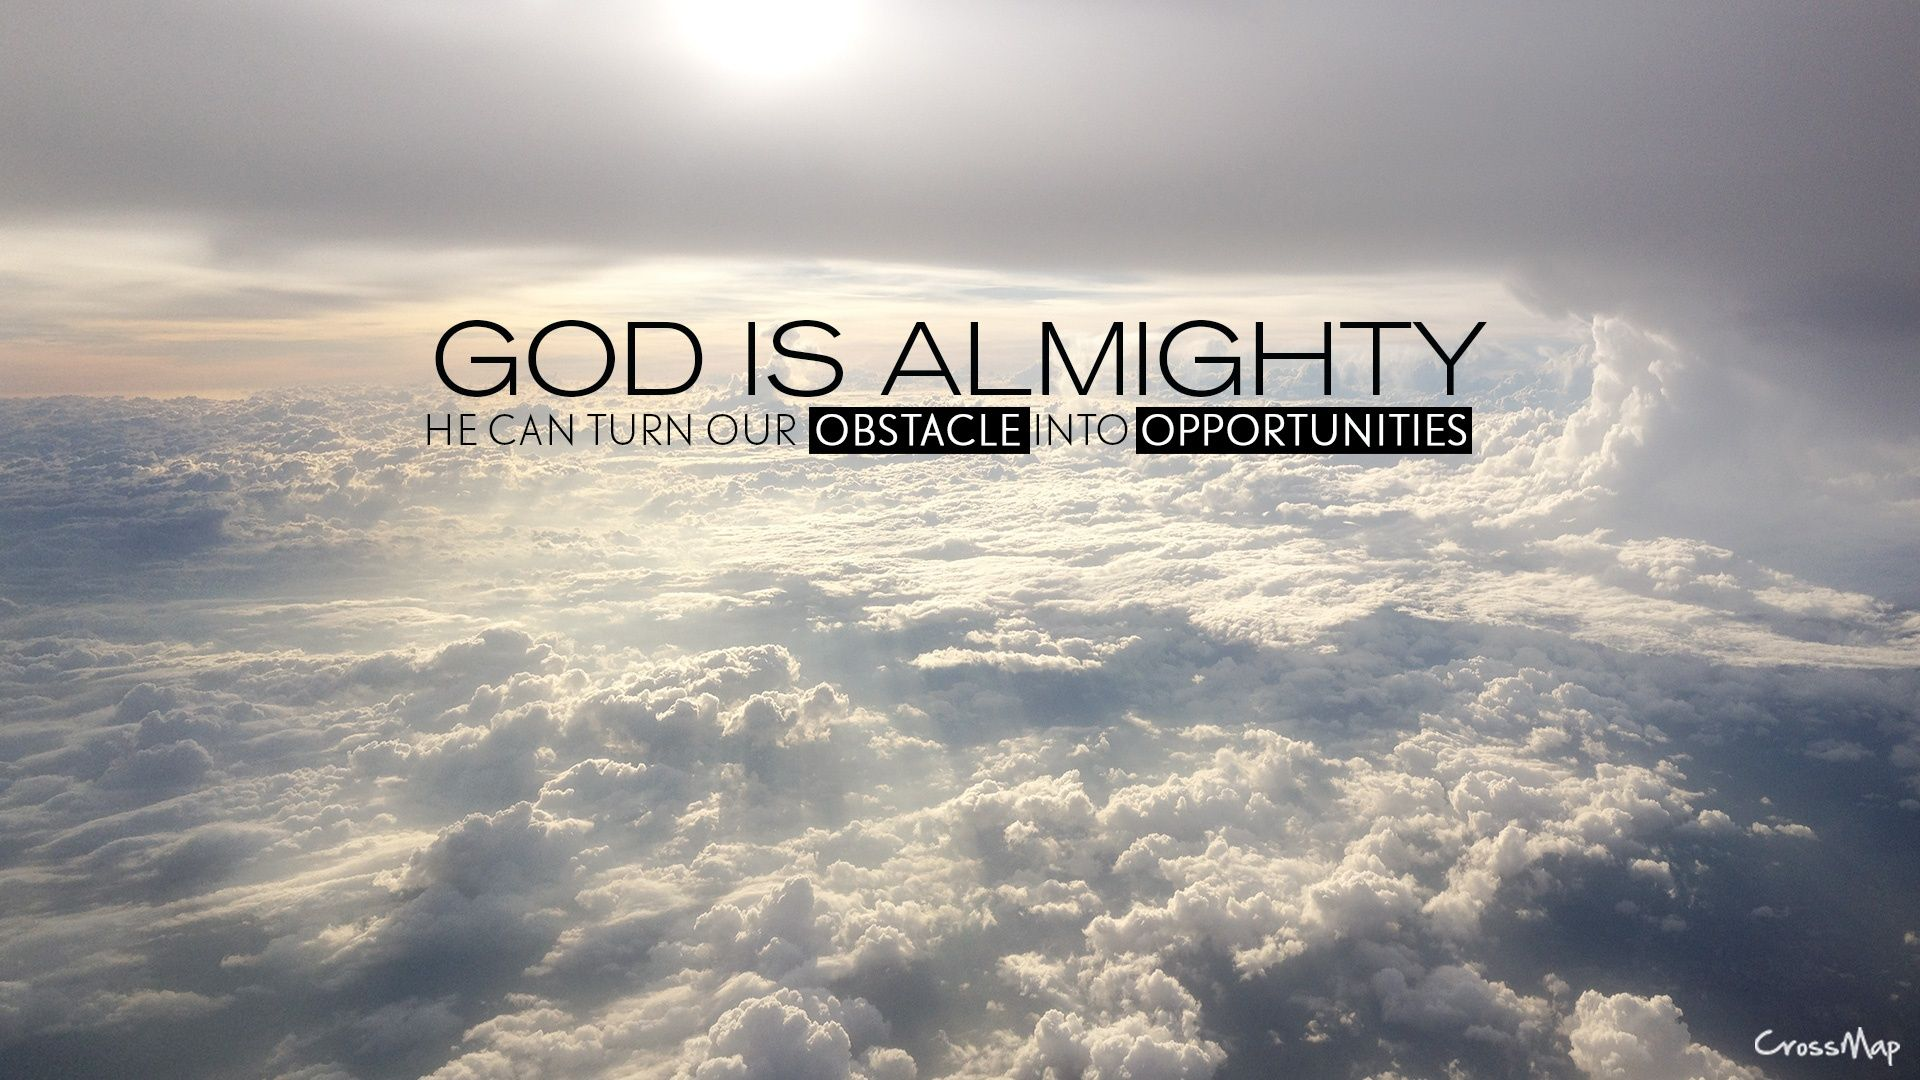 GOD is almighty | Christian Photographs | Crossmap Christian Backgrounds and Christian Wallpaper ...